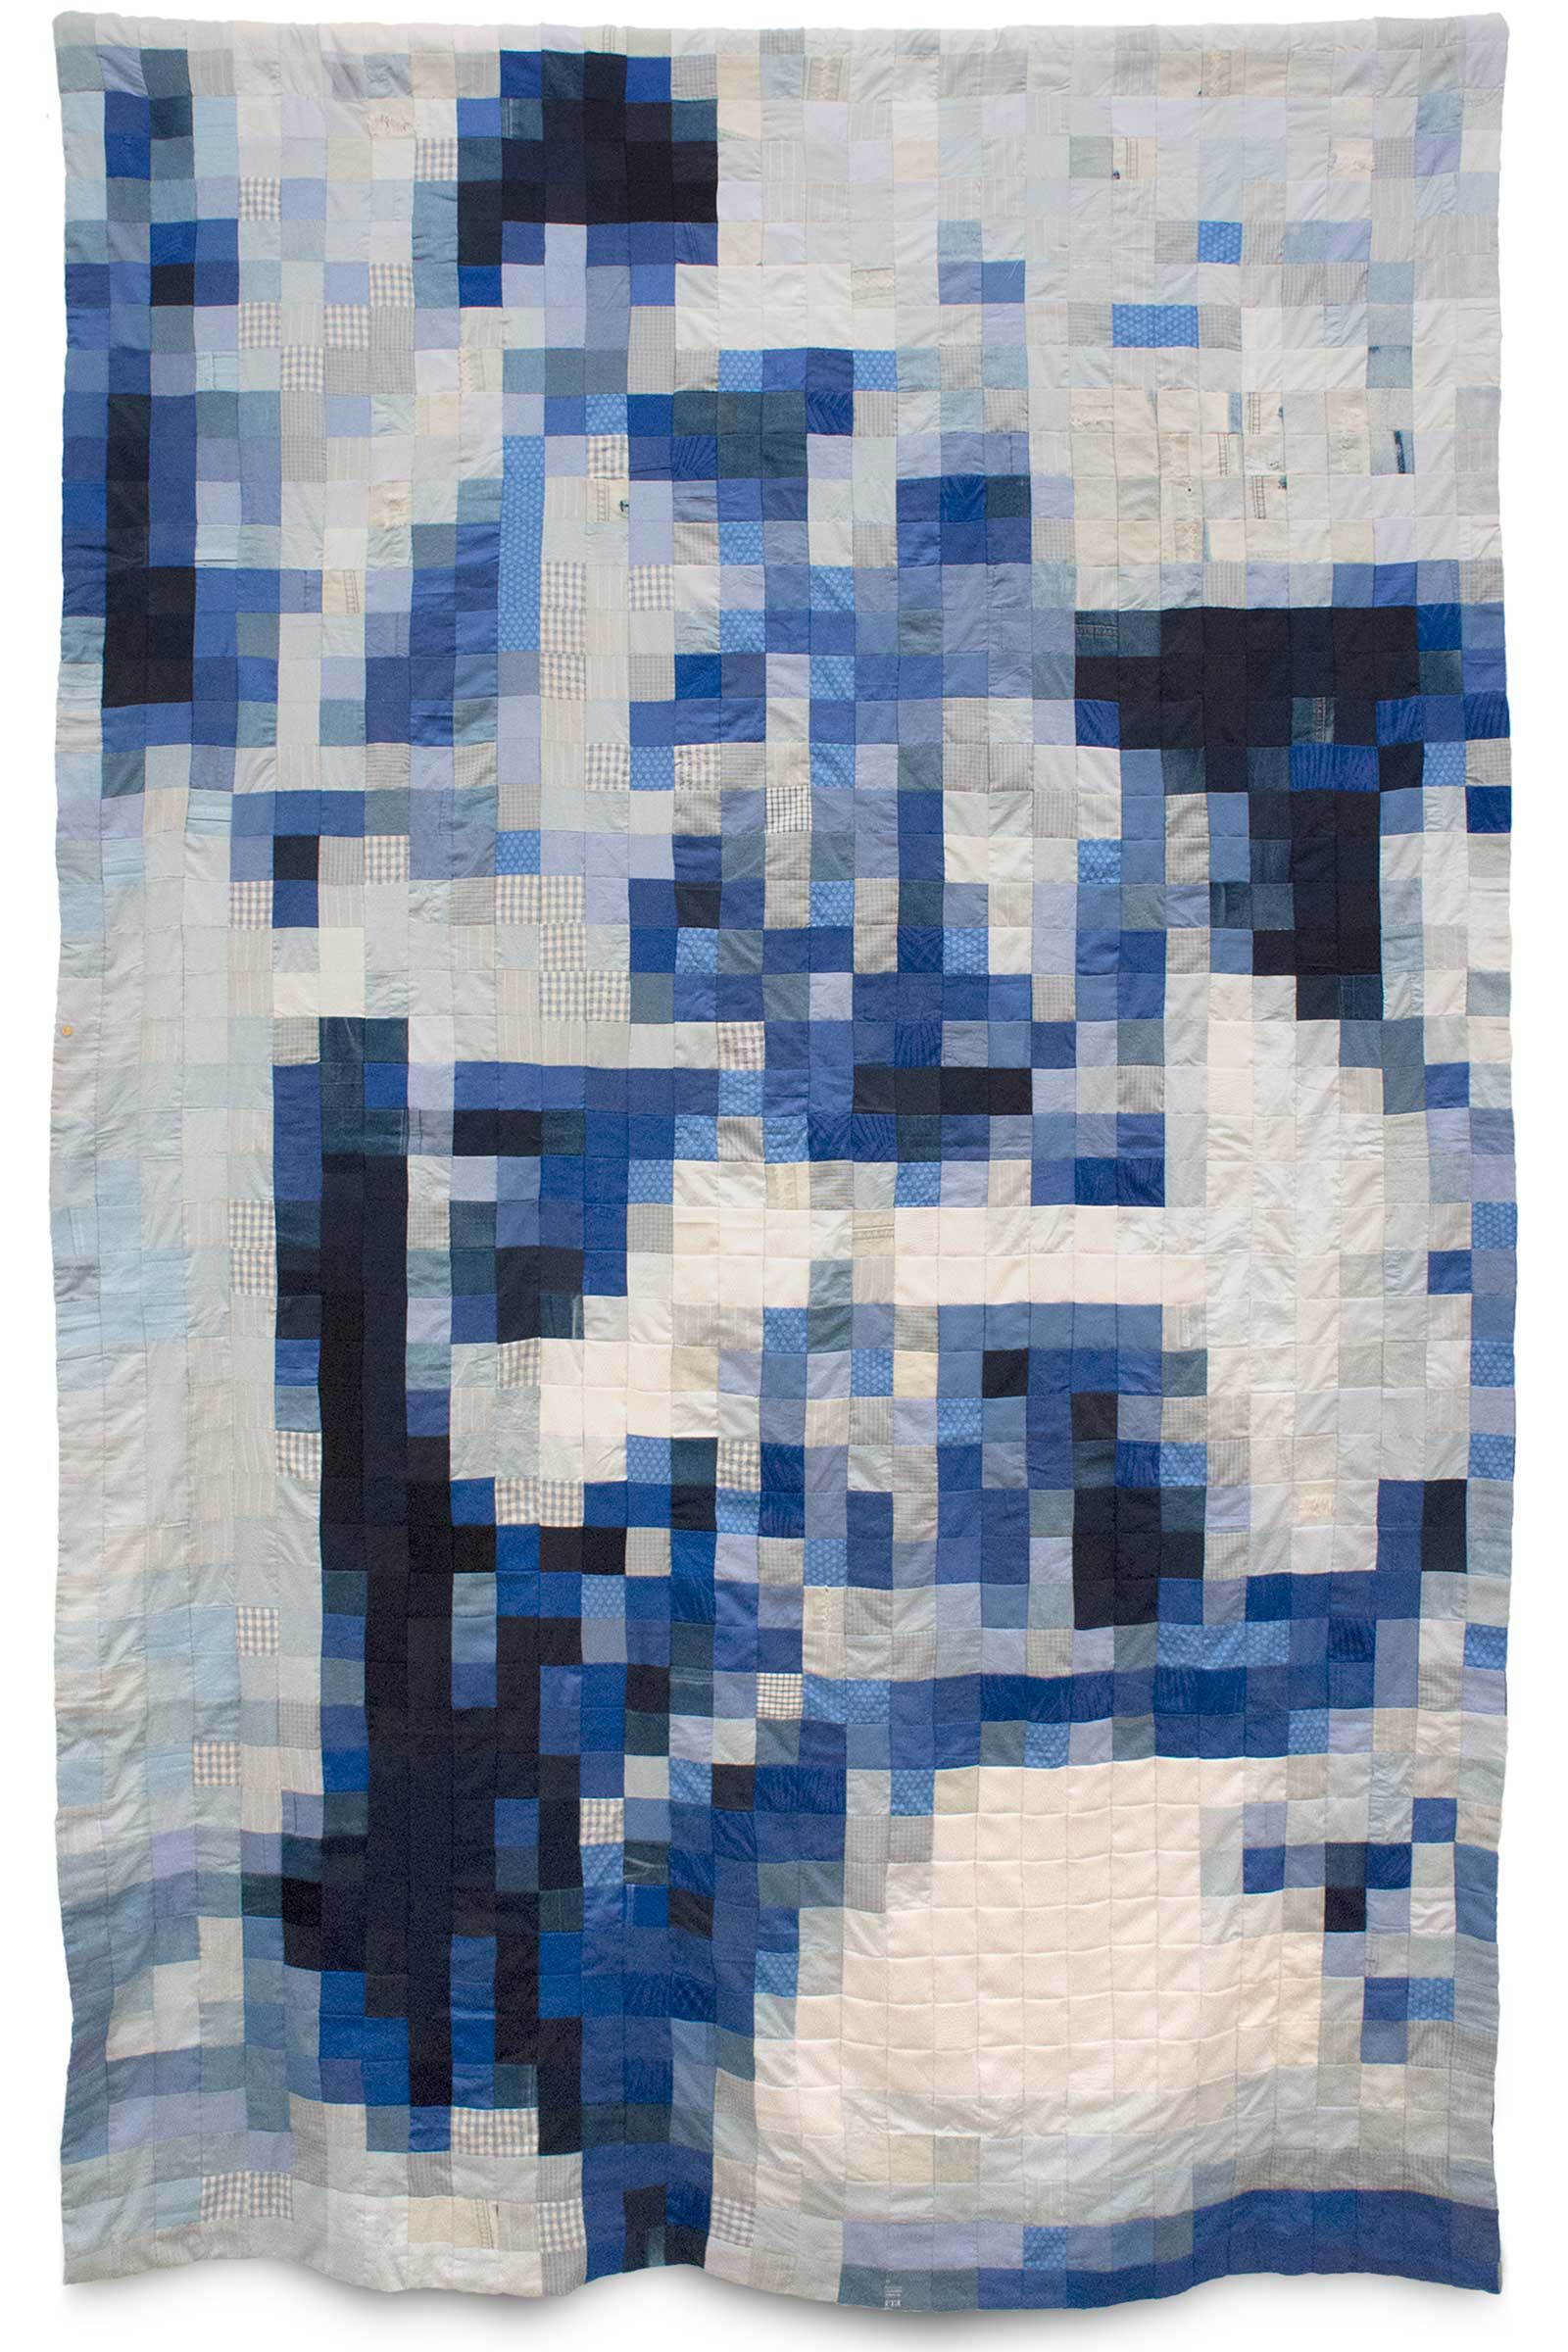 Võ Trân Châu, Blue, 2018, Used clothes, thread, 93.3 x 60.2 inches. Image courtesy of the artist and Galerie Quynh, Ho Chi Minh City, Vietnam.